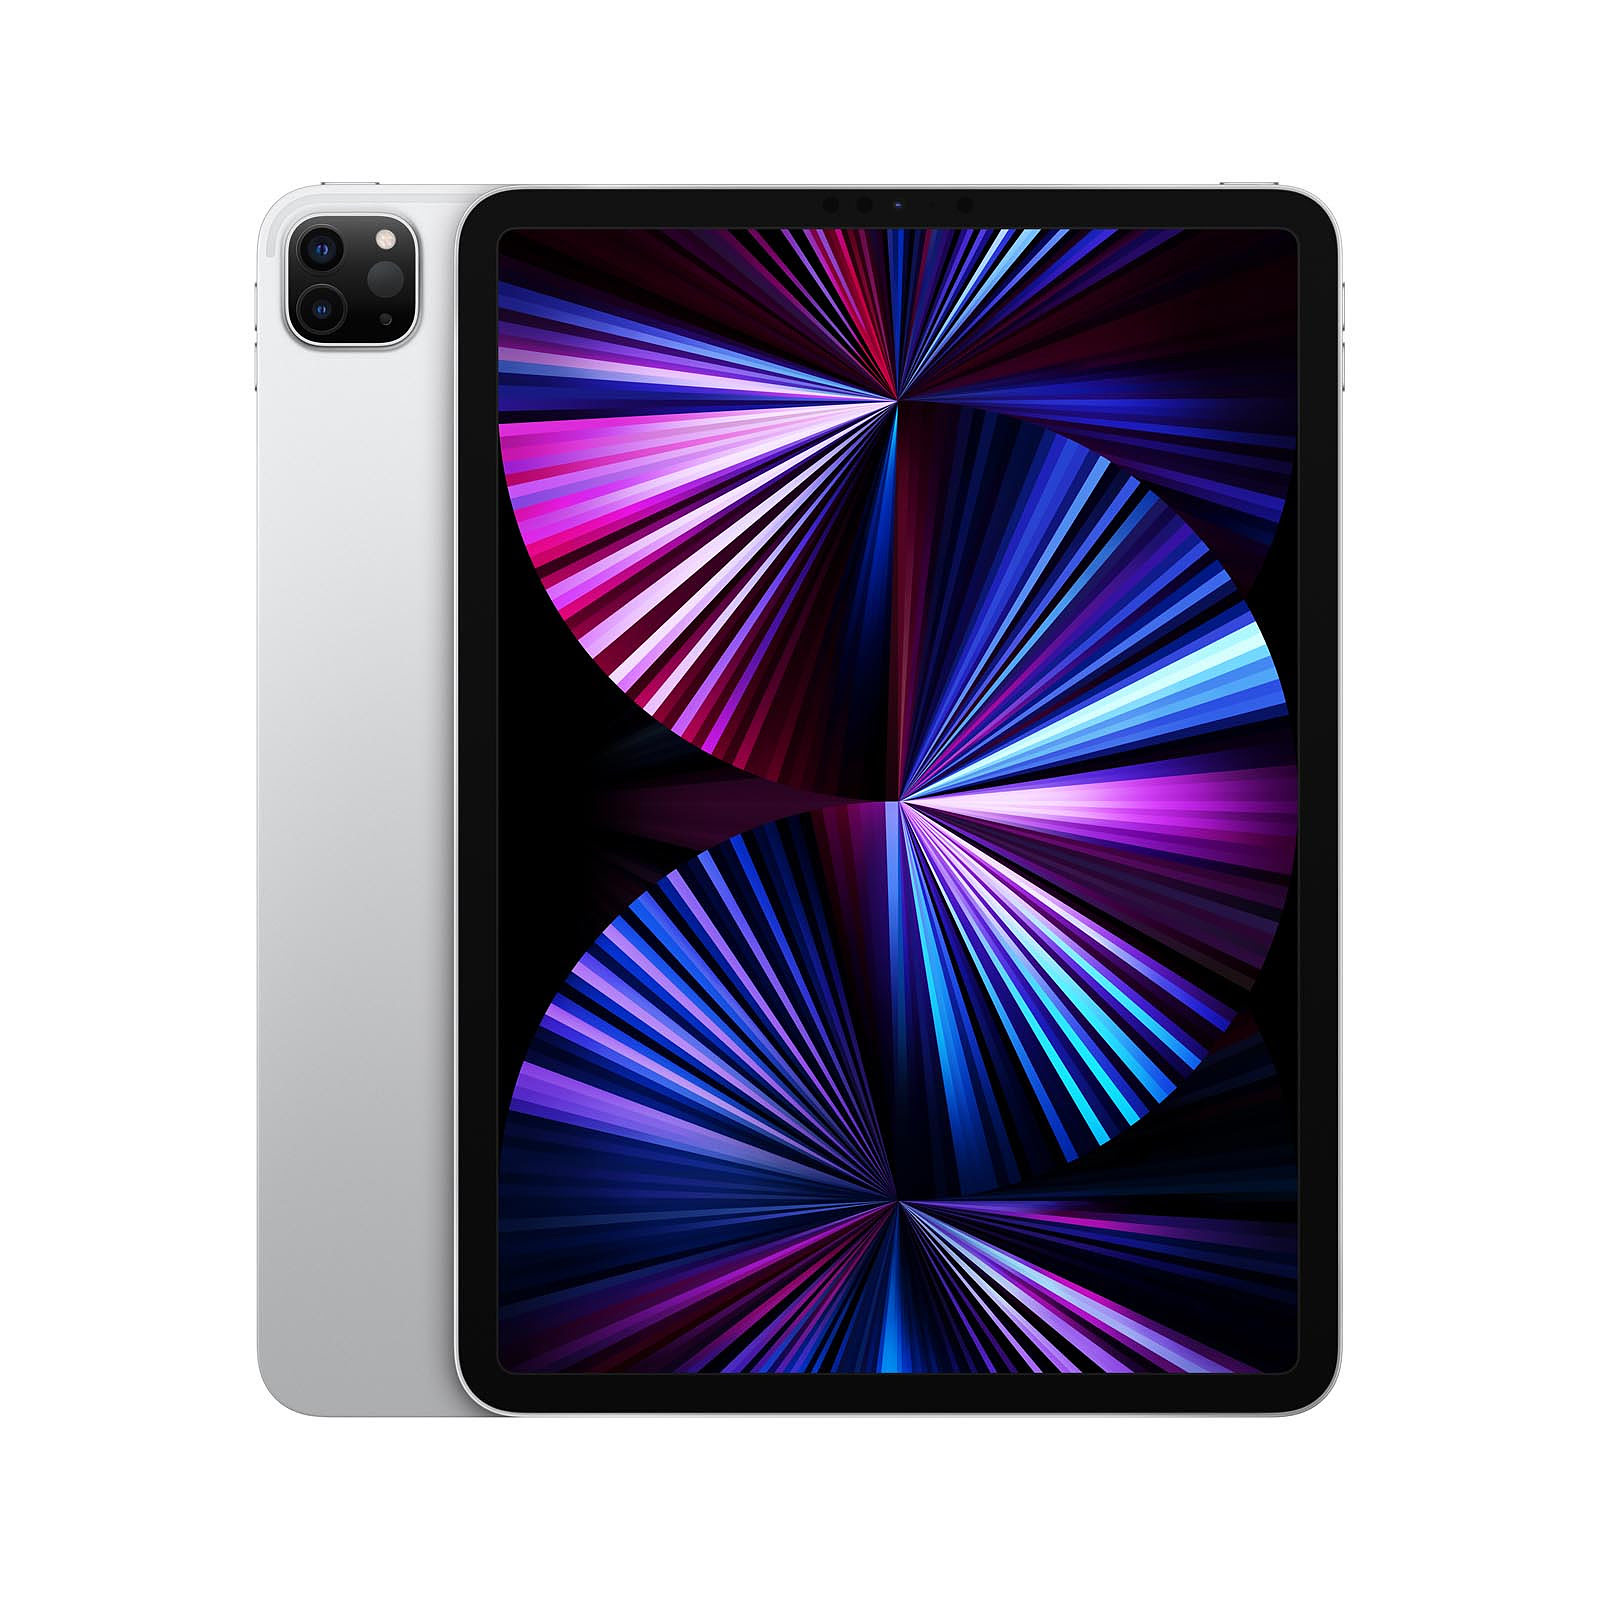 iPad Pro 11 WiFi+Cell 128Go Argent - MHW63NF/A